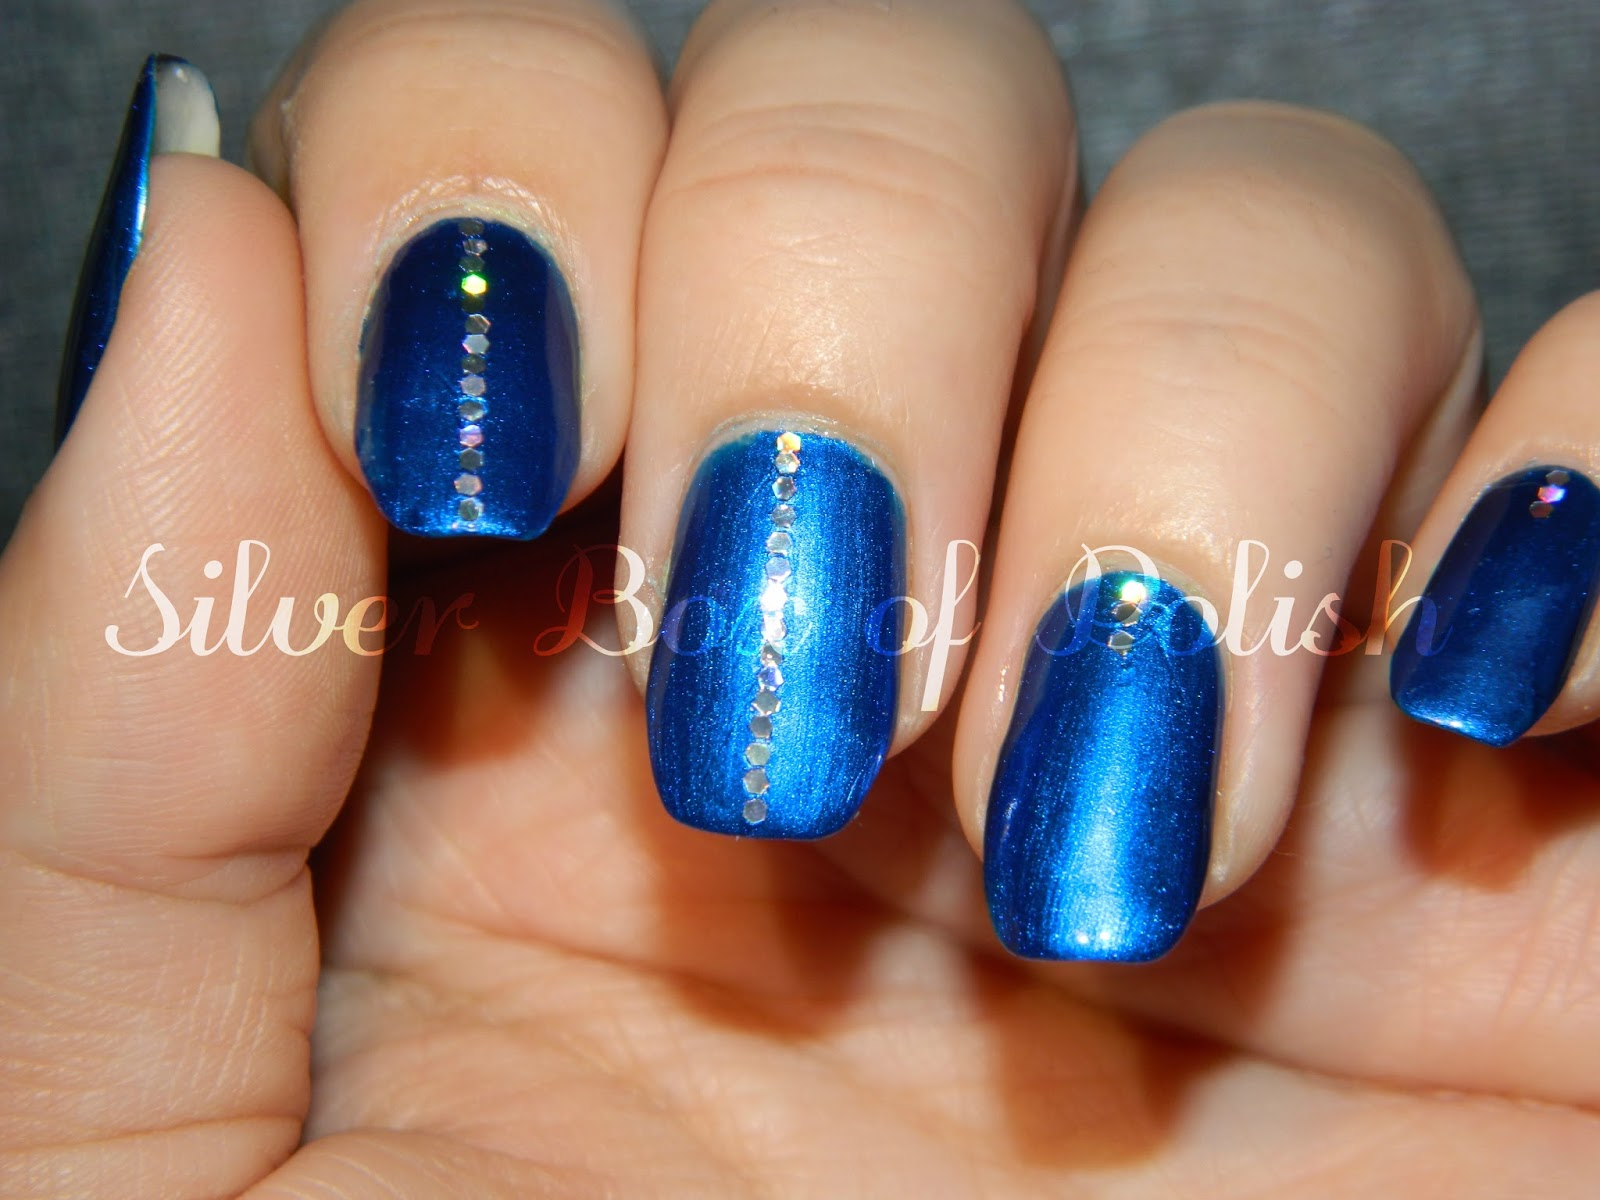 Silver Box of Polish: 31DC2016 Day 5 - Blue Nails